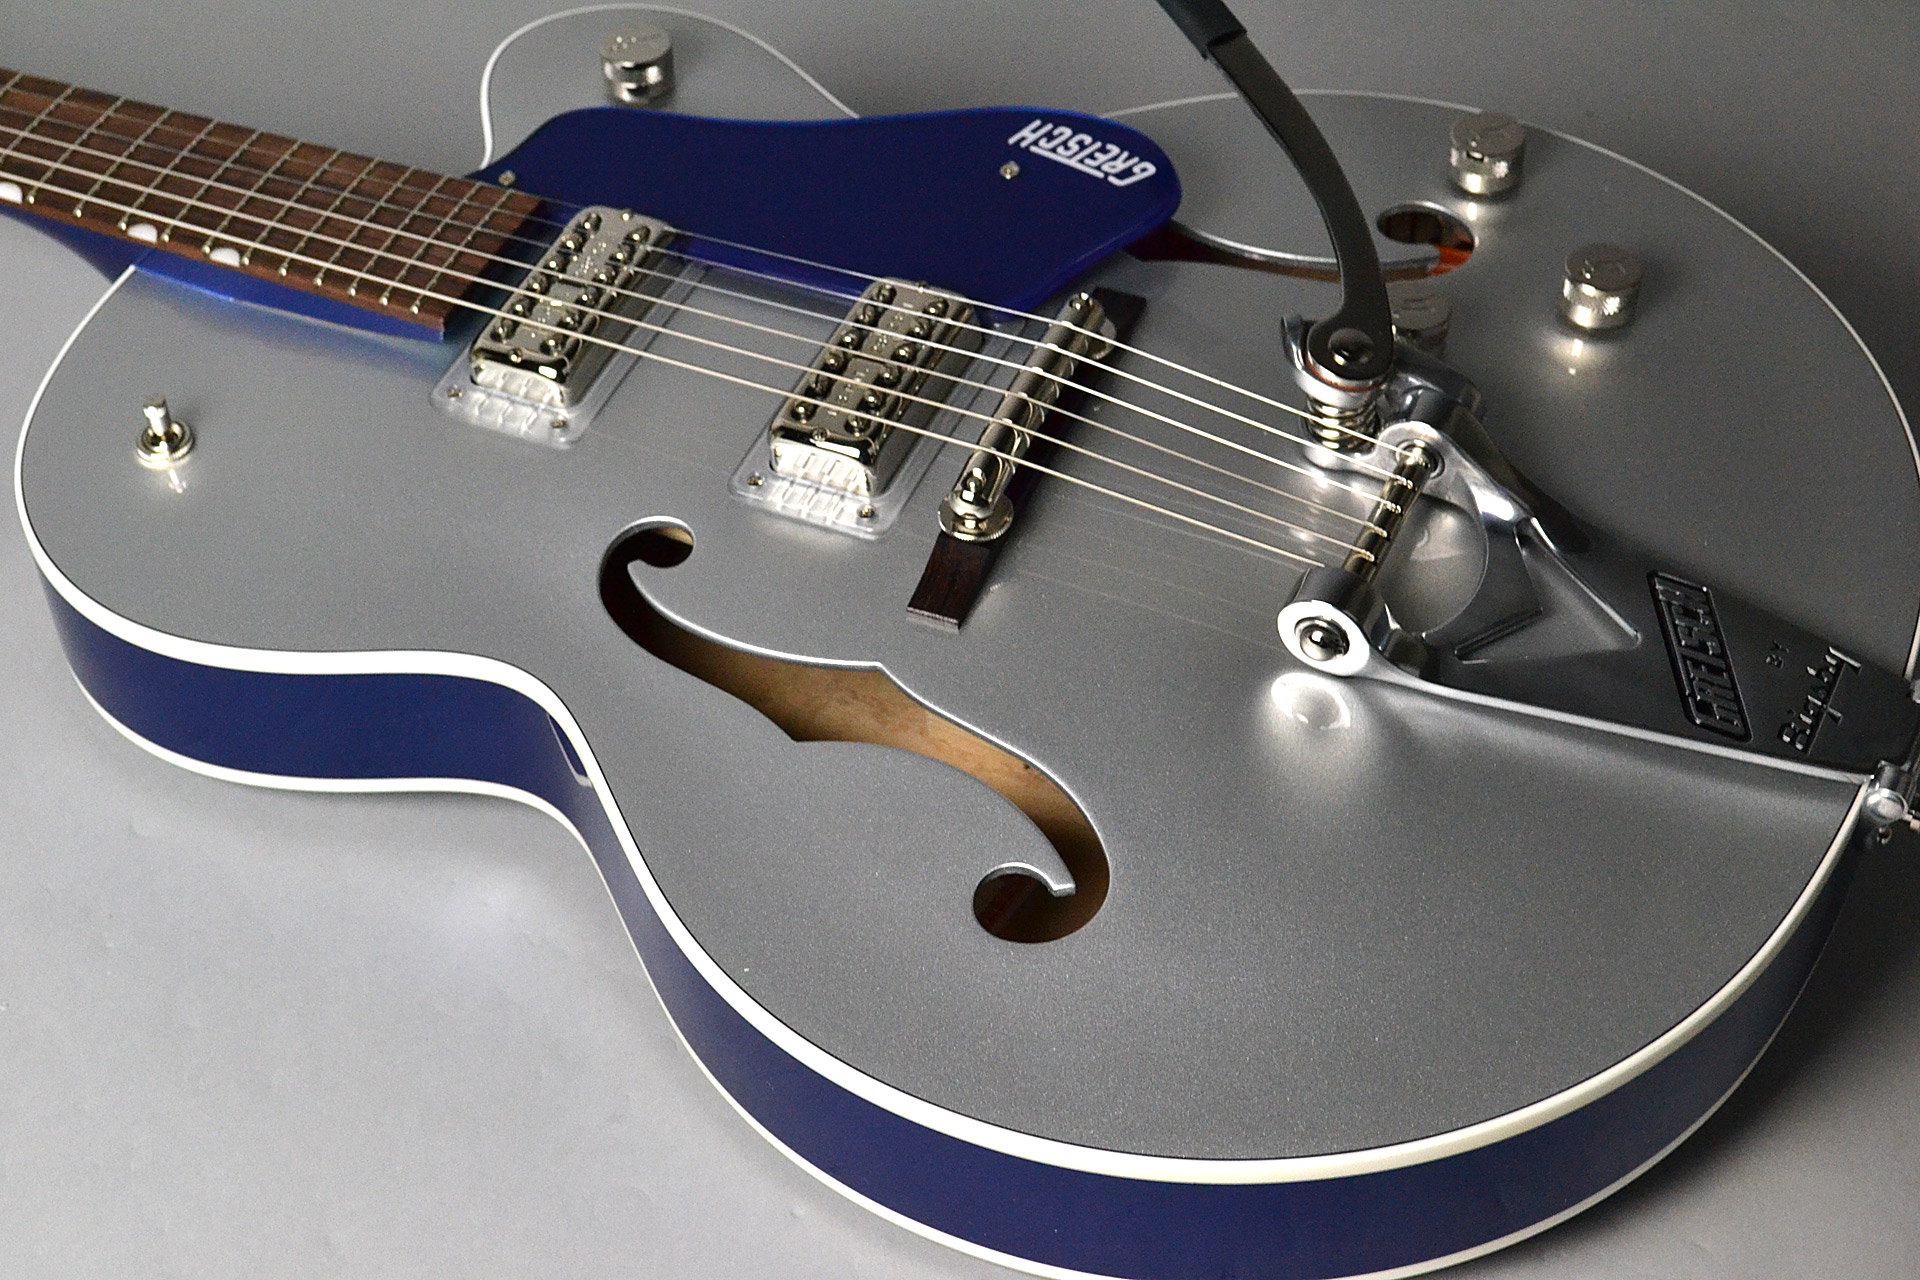 G6118T Players Edition Anniversary 2-Tone Iridium Silver/Azure Metallicの全体画像(縦)